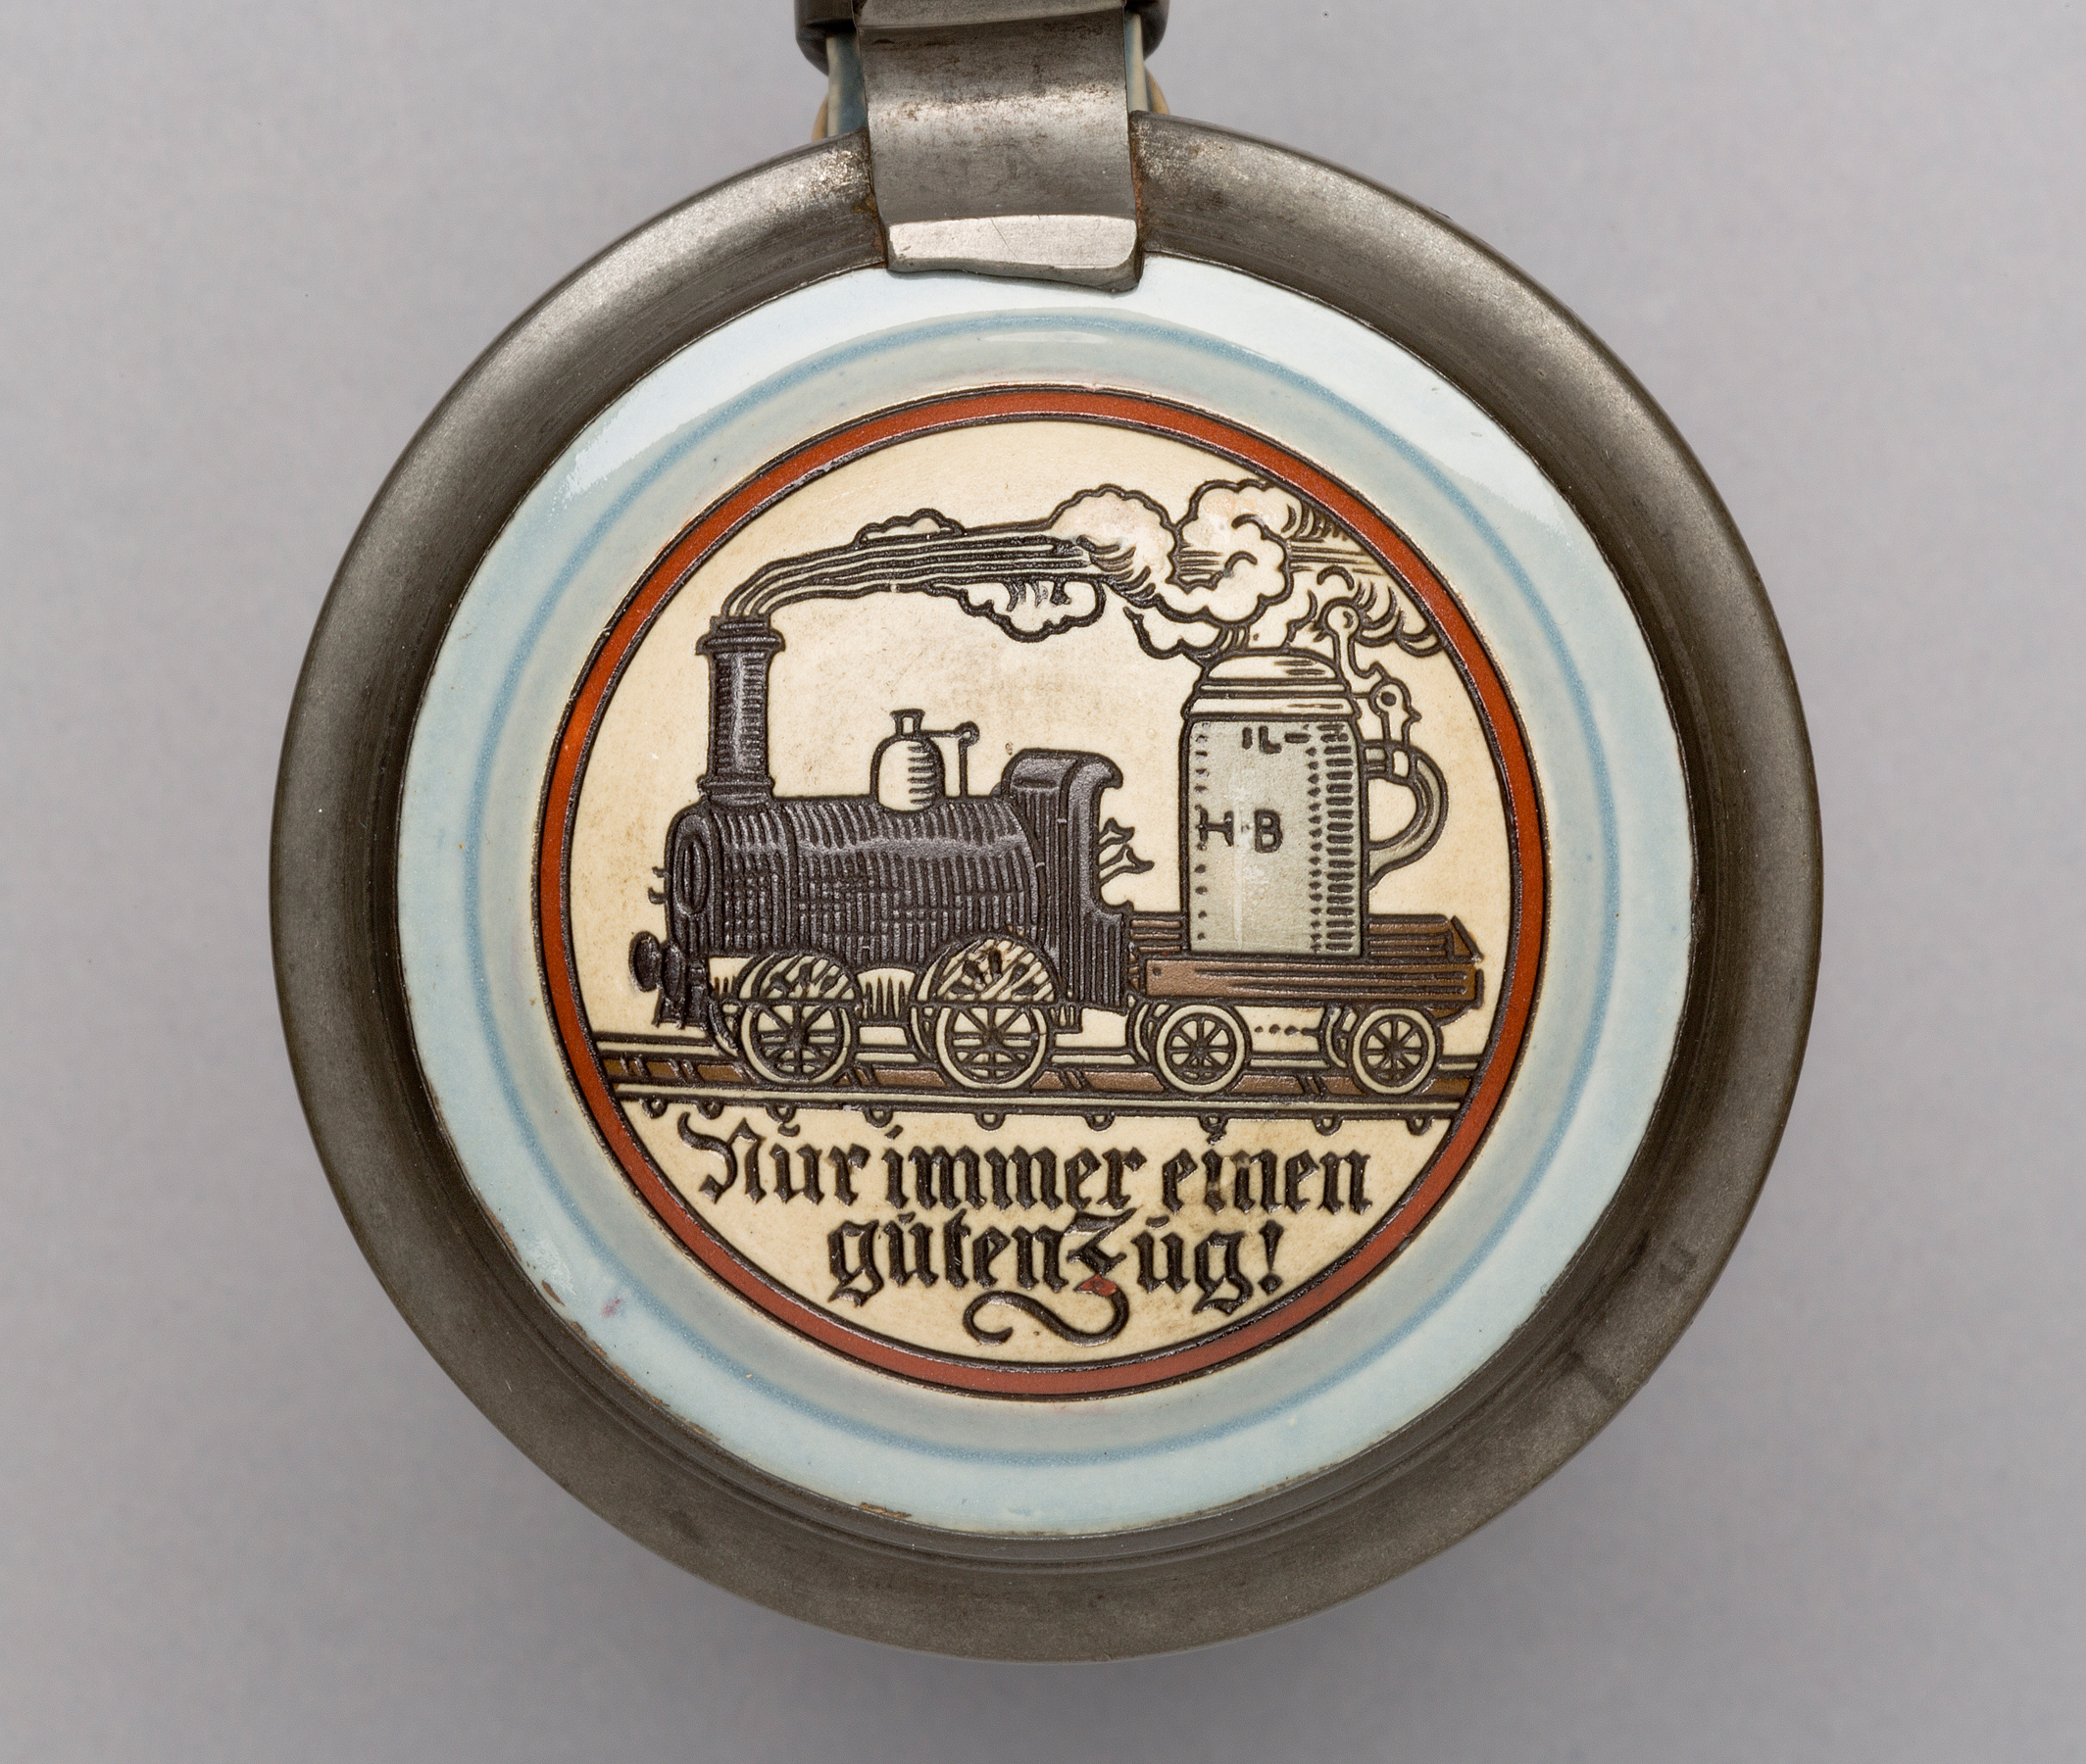 German Tankards And Steins: Part 6–Mettlach And The